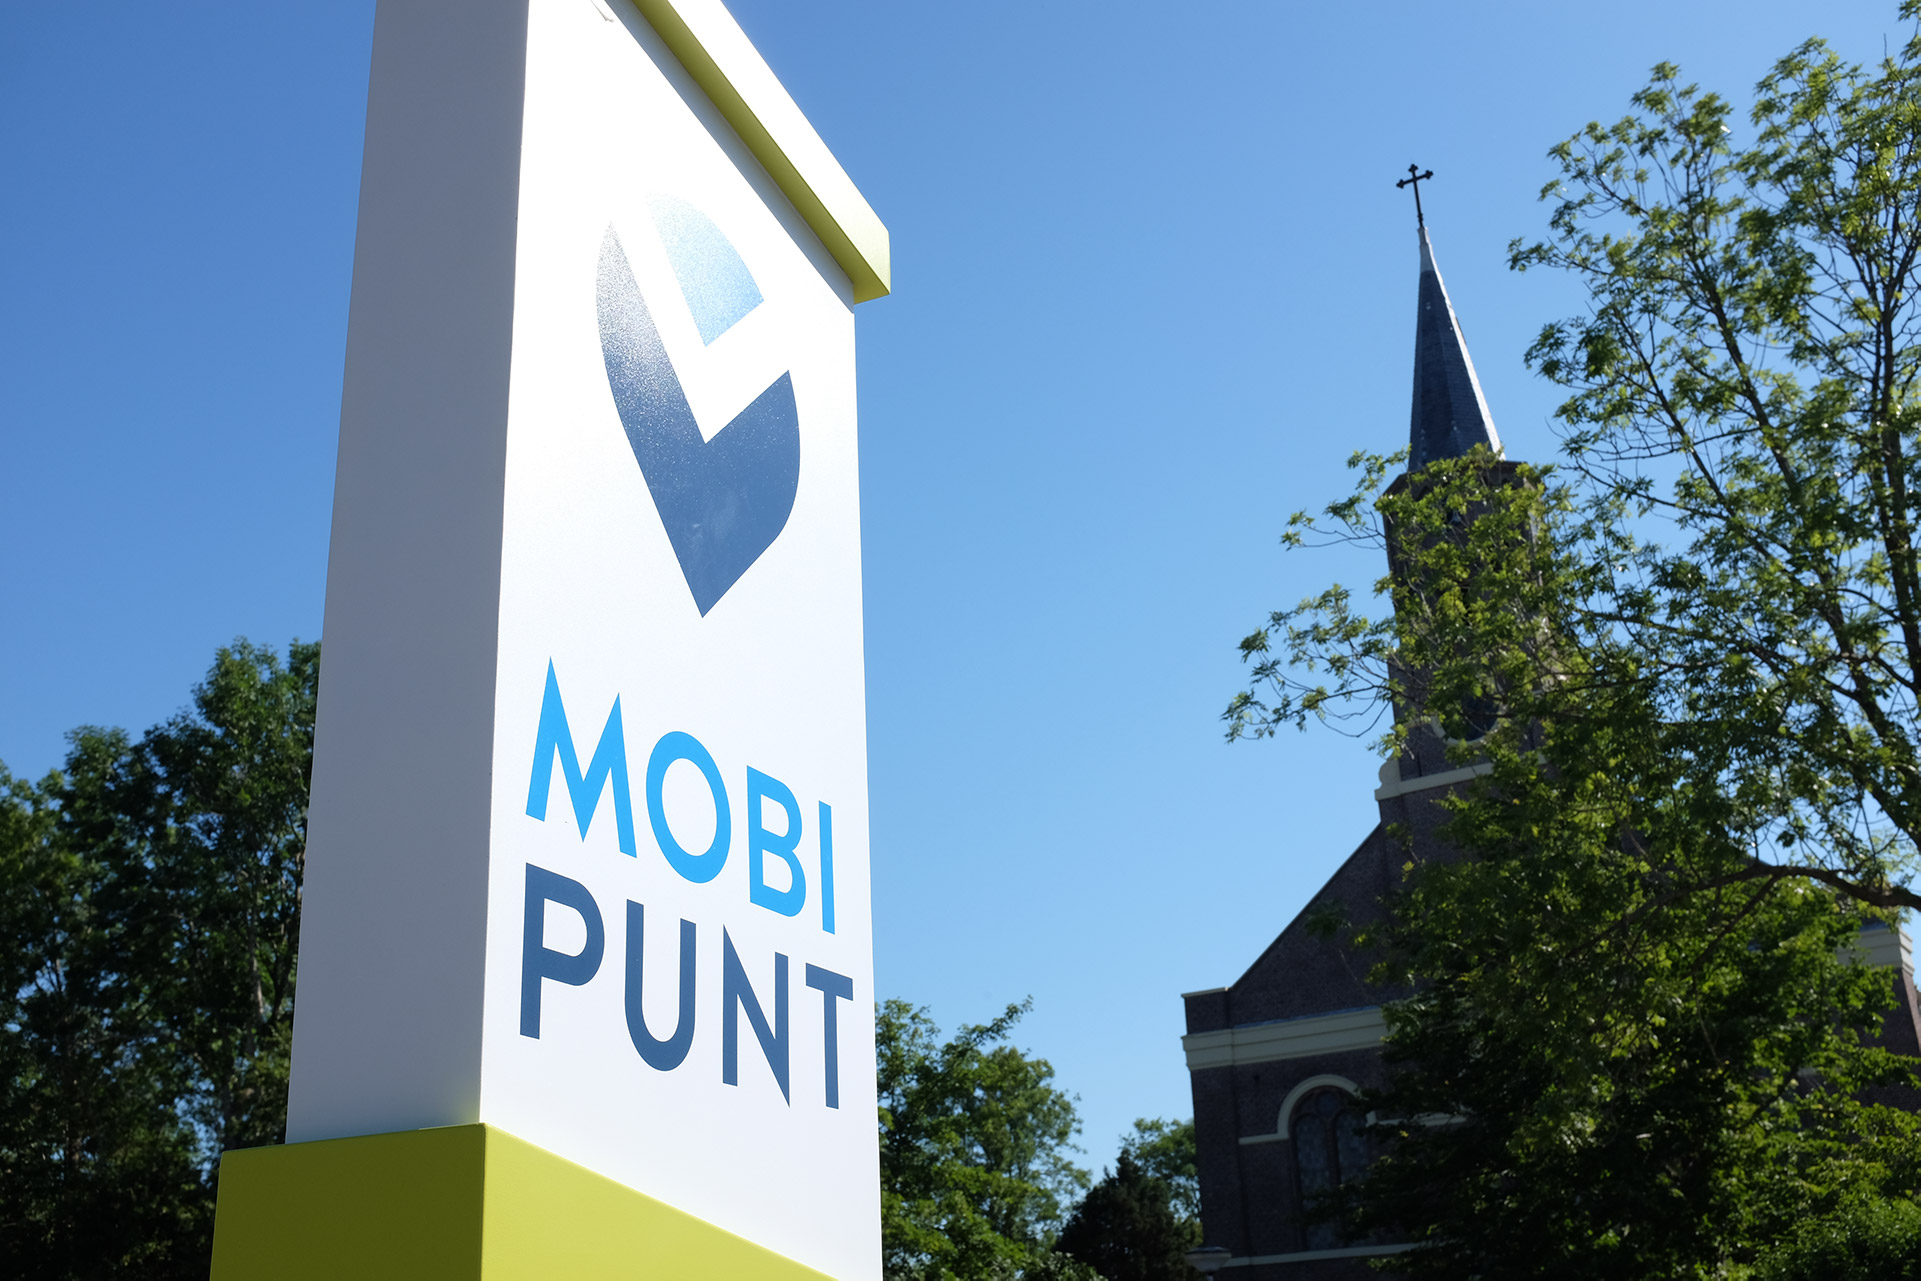 Mobipunt paal 't Veld